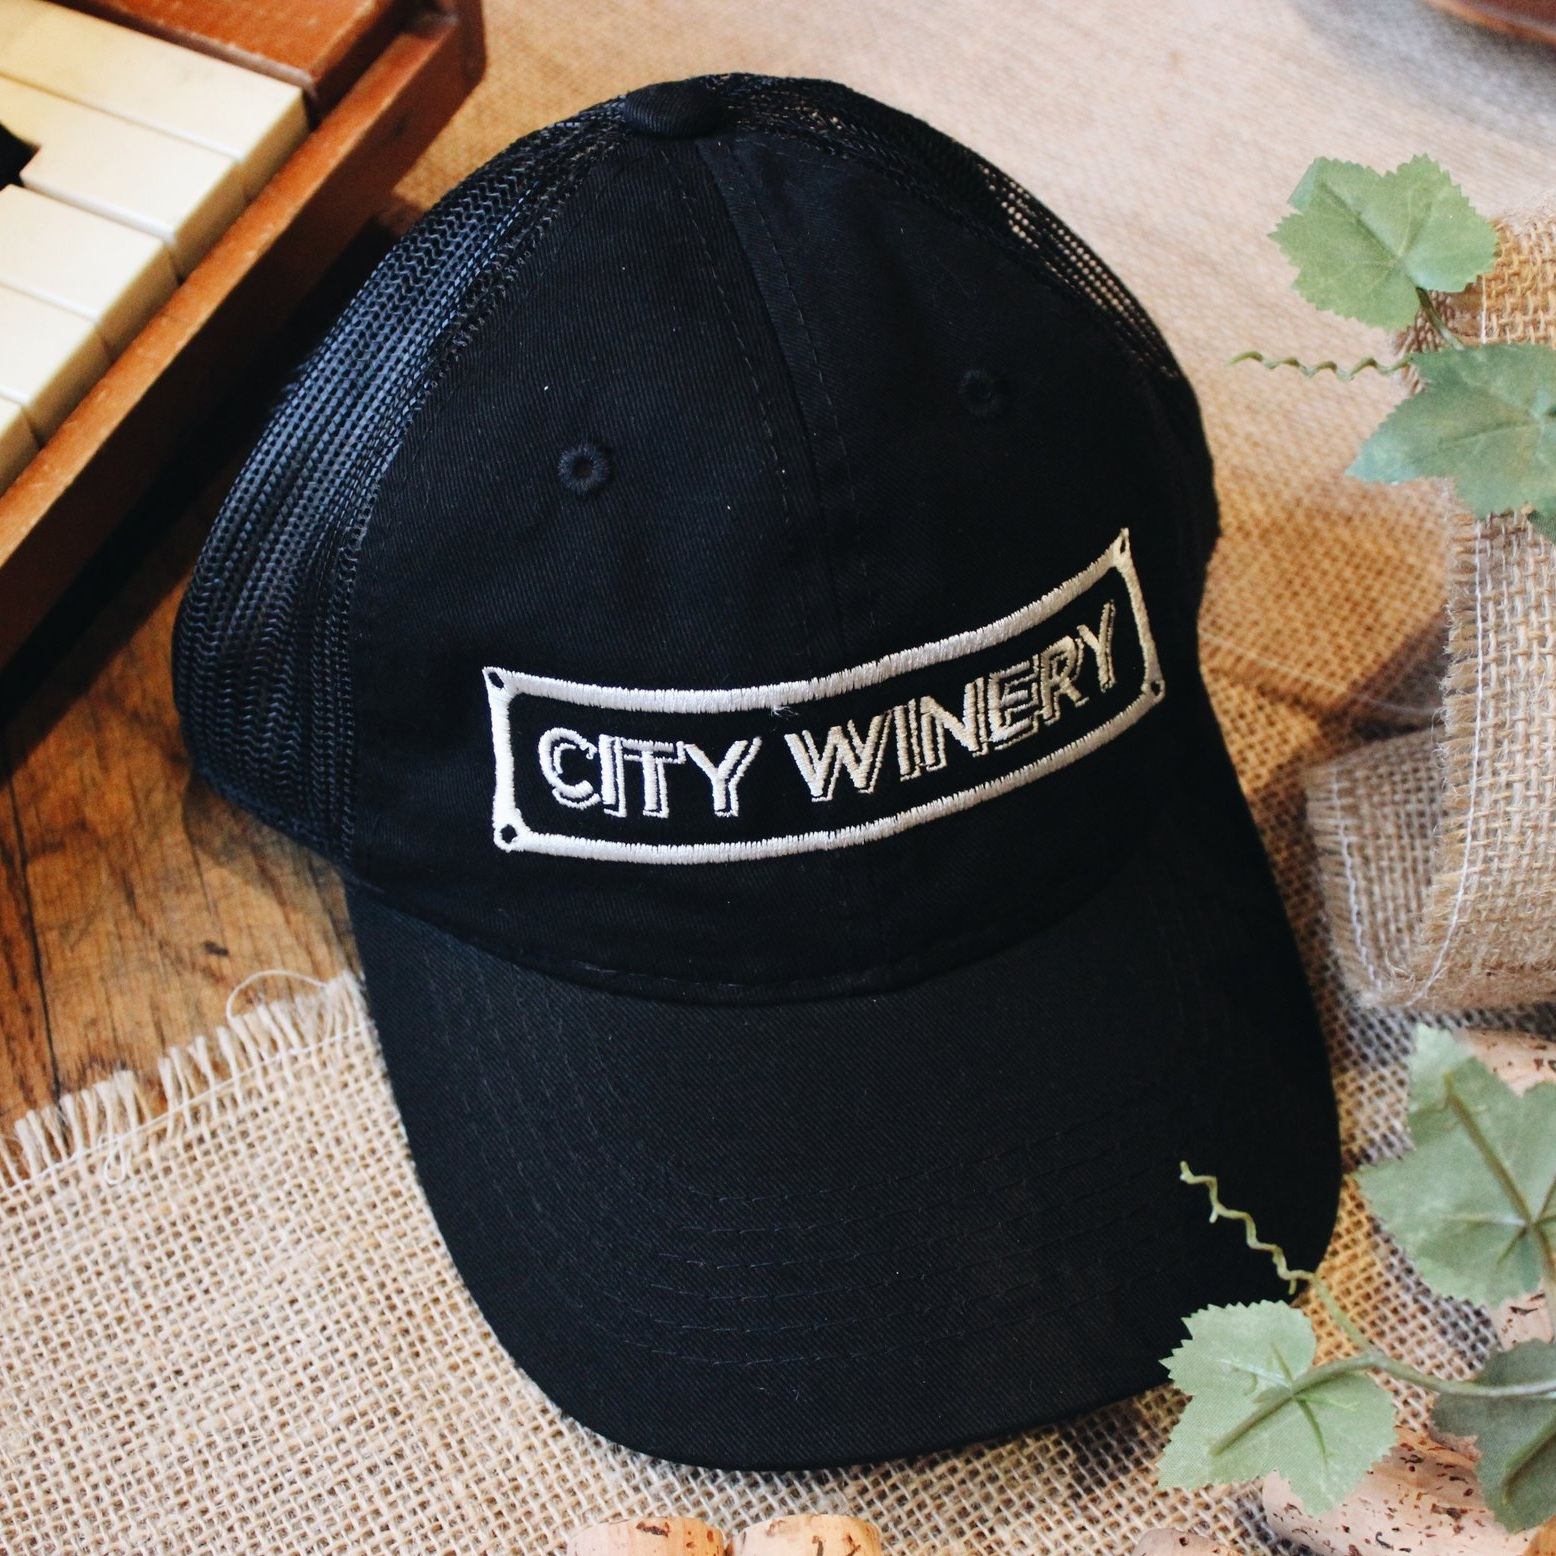 CW Logo Mesh Trucker Hat - One size fits all.